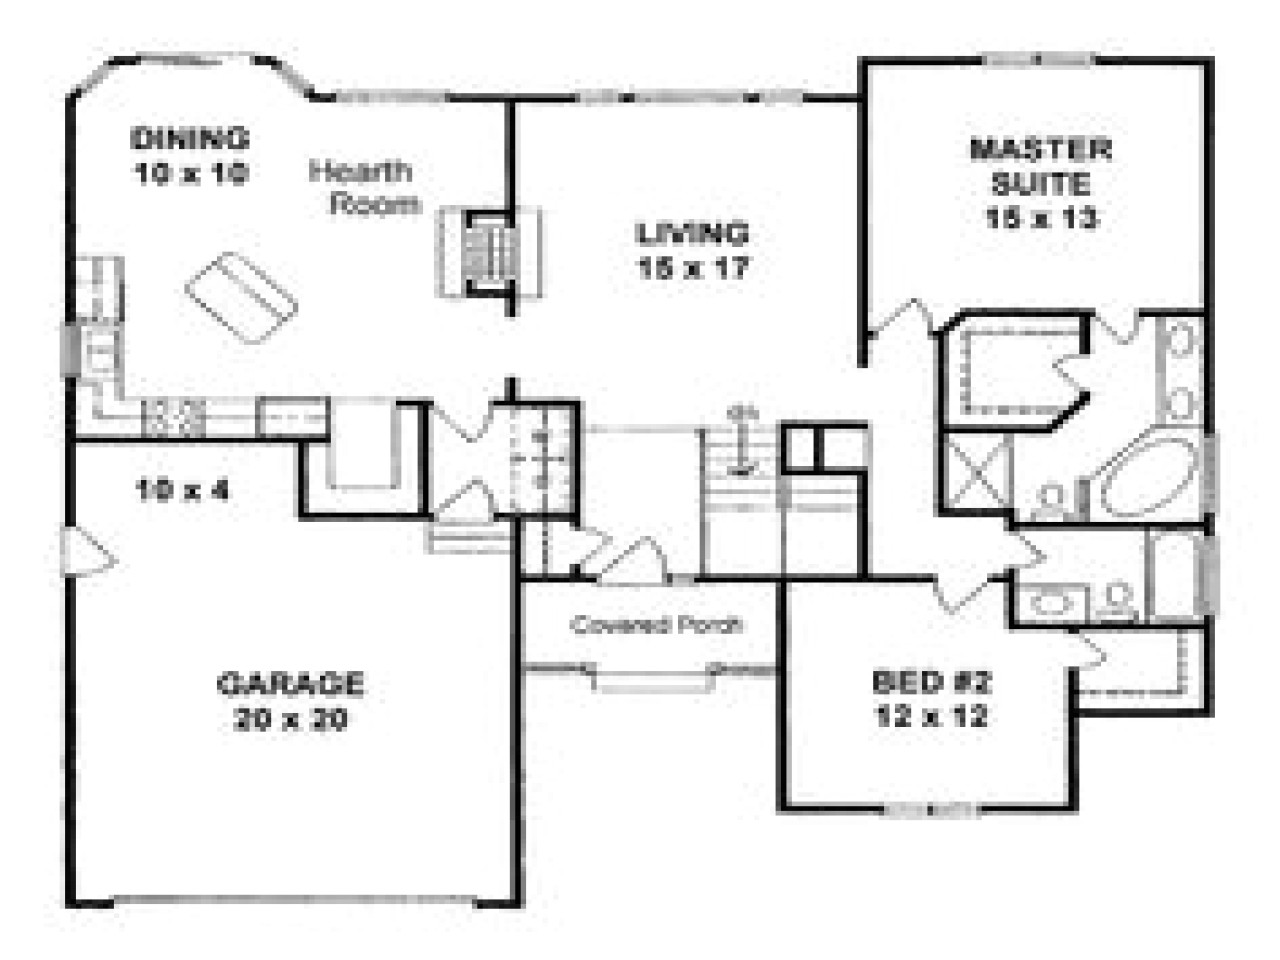 1400 square foot home plans 1500 square foot house plans ed7314c526a5ebcd